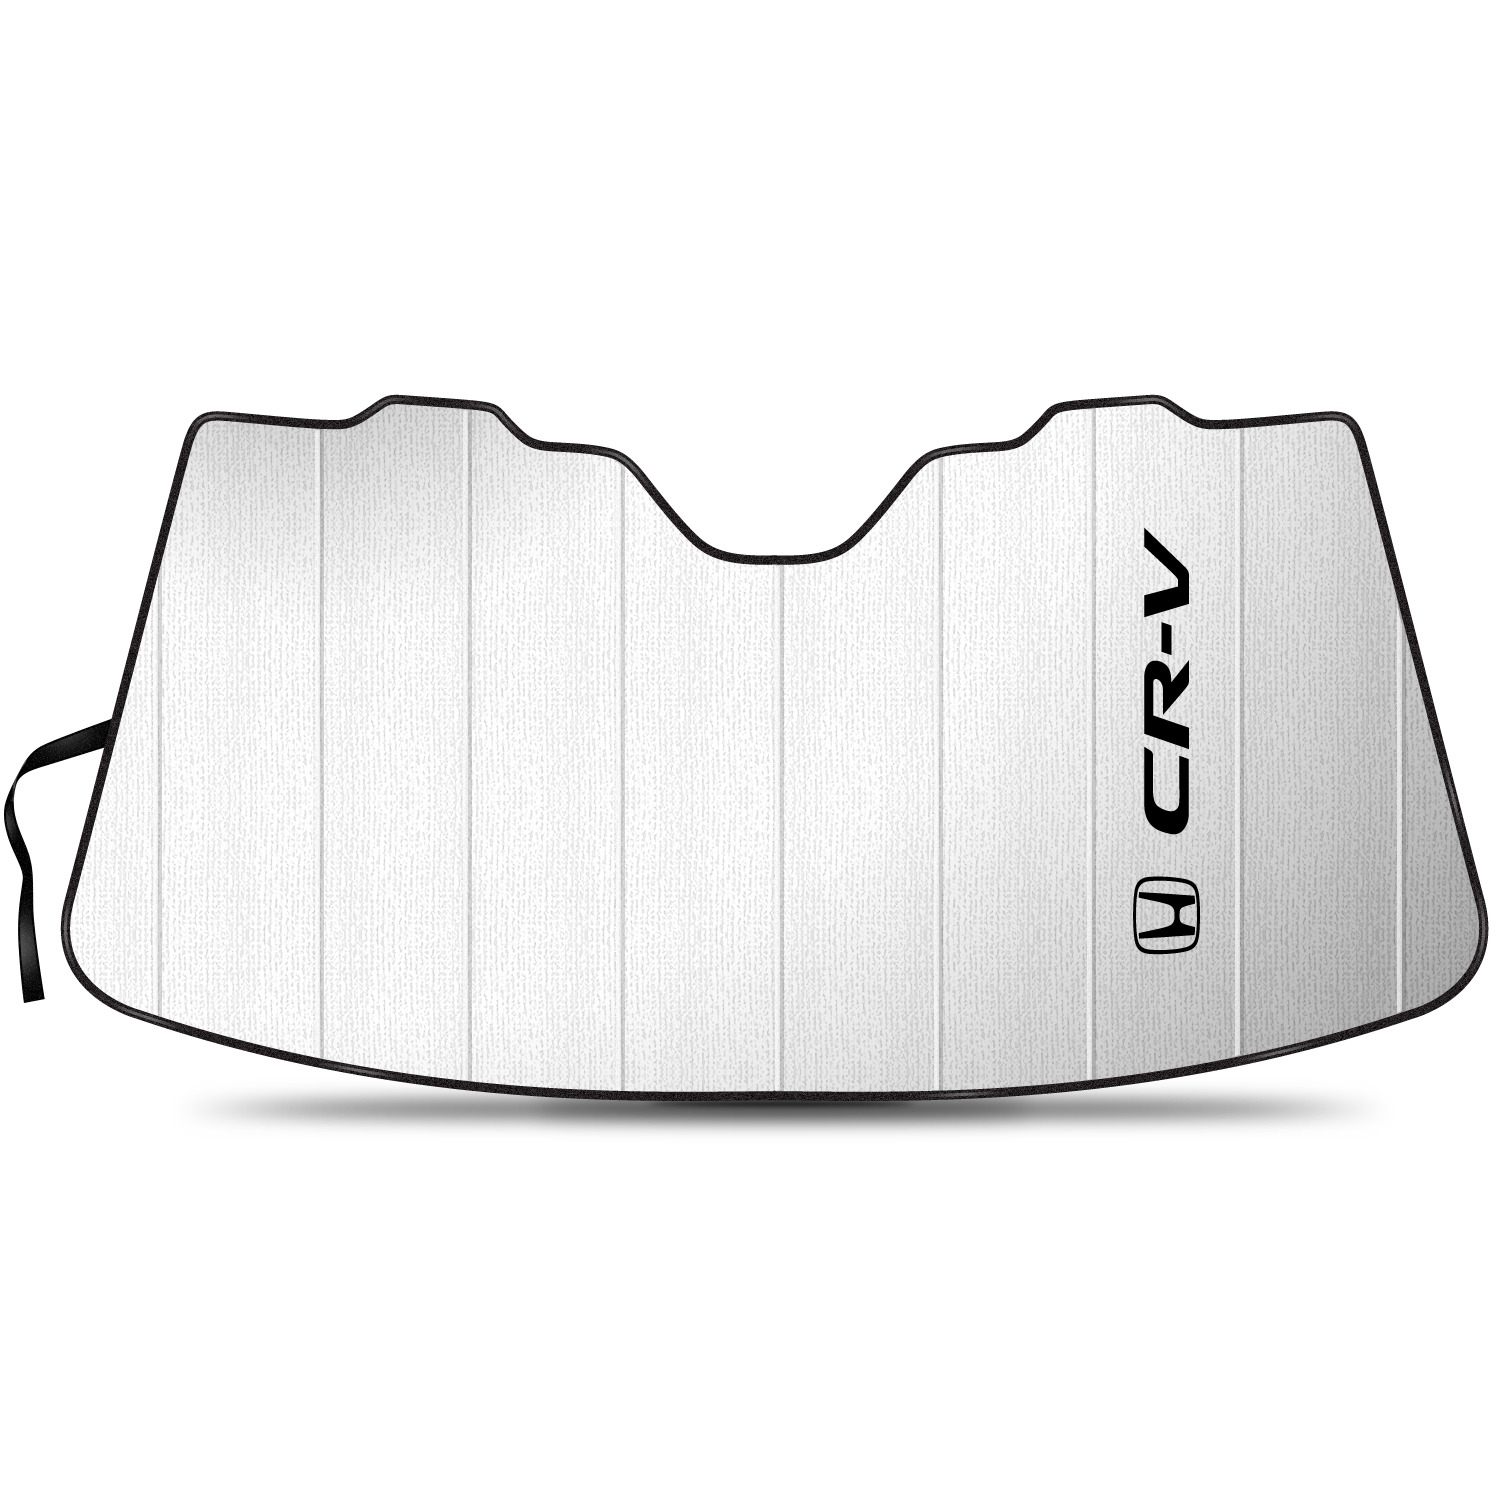 Honda CR-V Stand Up Universal Fit Auto Windshield Sun Shade